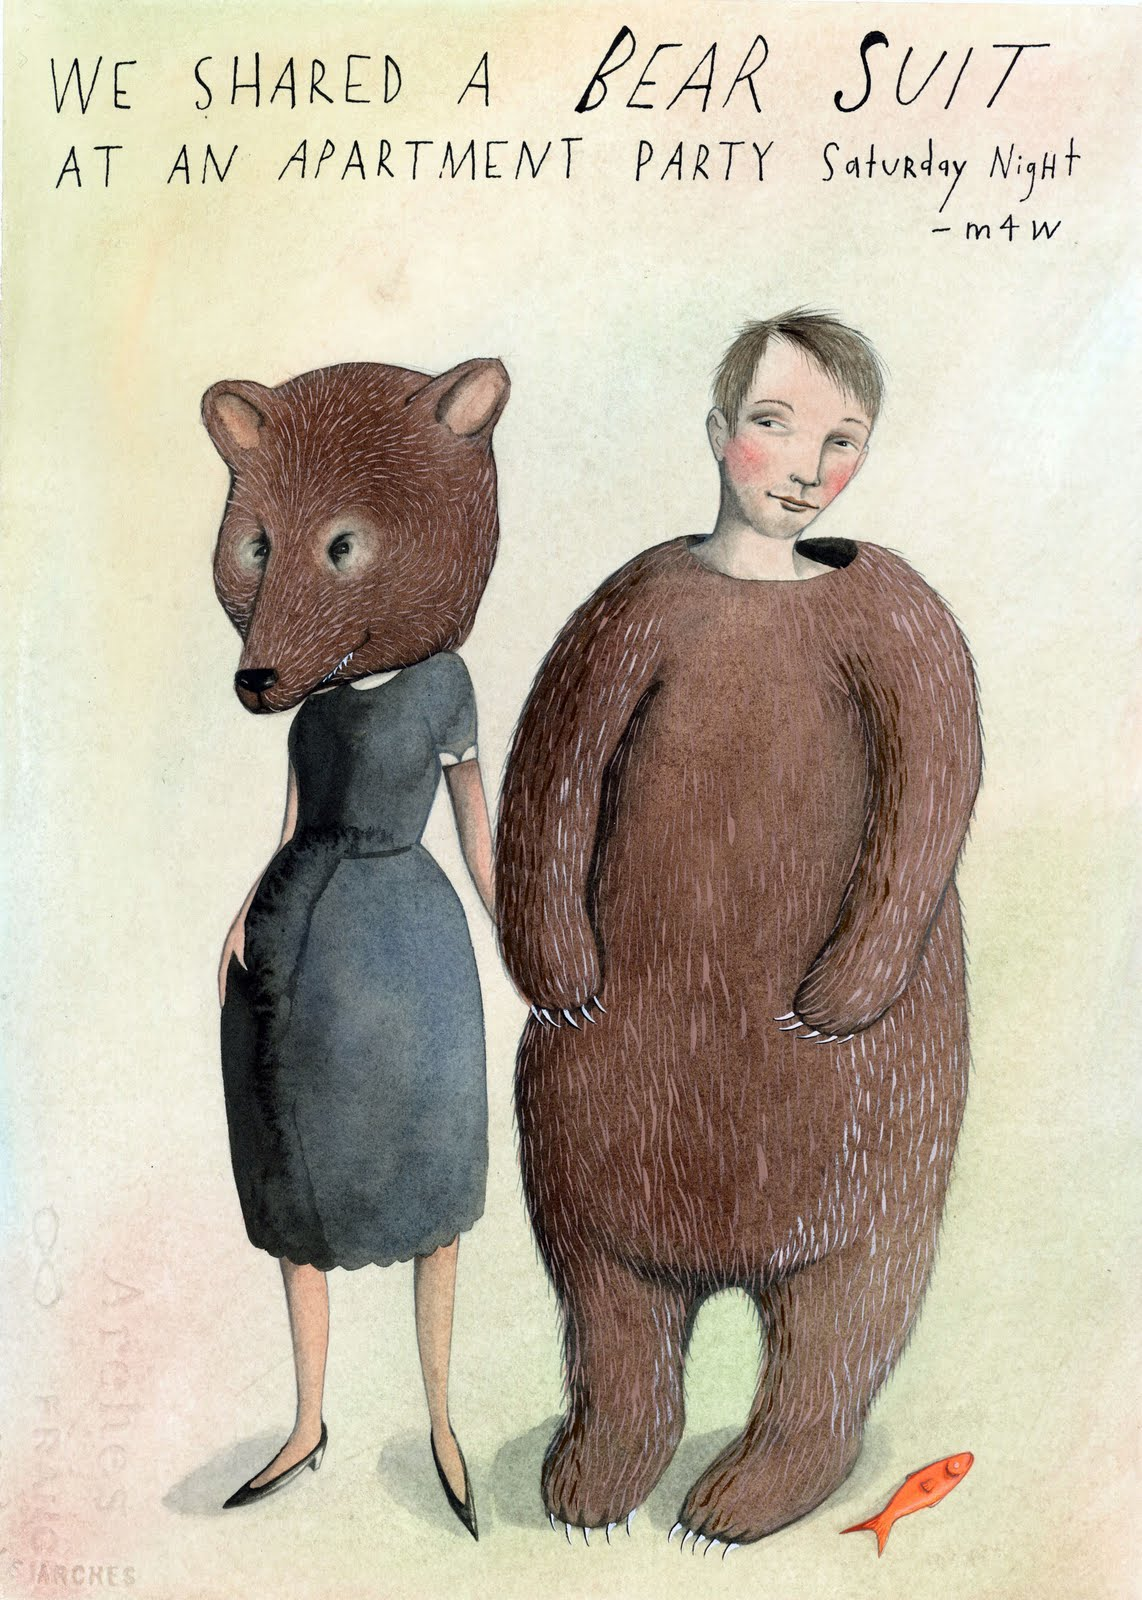 my-blueberry-nights :       Saturday, October 17, 2009     - m4w     We shared a bear suit at an apartment party on Saturday night.     I asked for your number and you gave it to me, but somehow I don't have an area code written down. I had a great time talking with you, and I don't trust Chance enough to wait until I see you in the elevators…